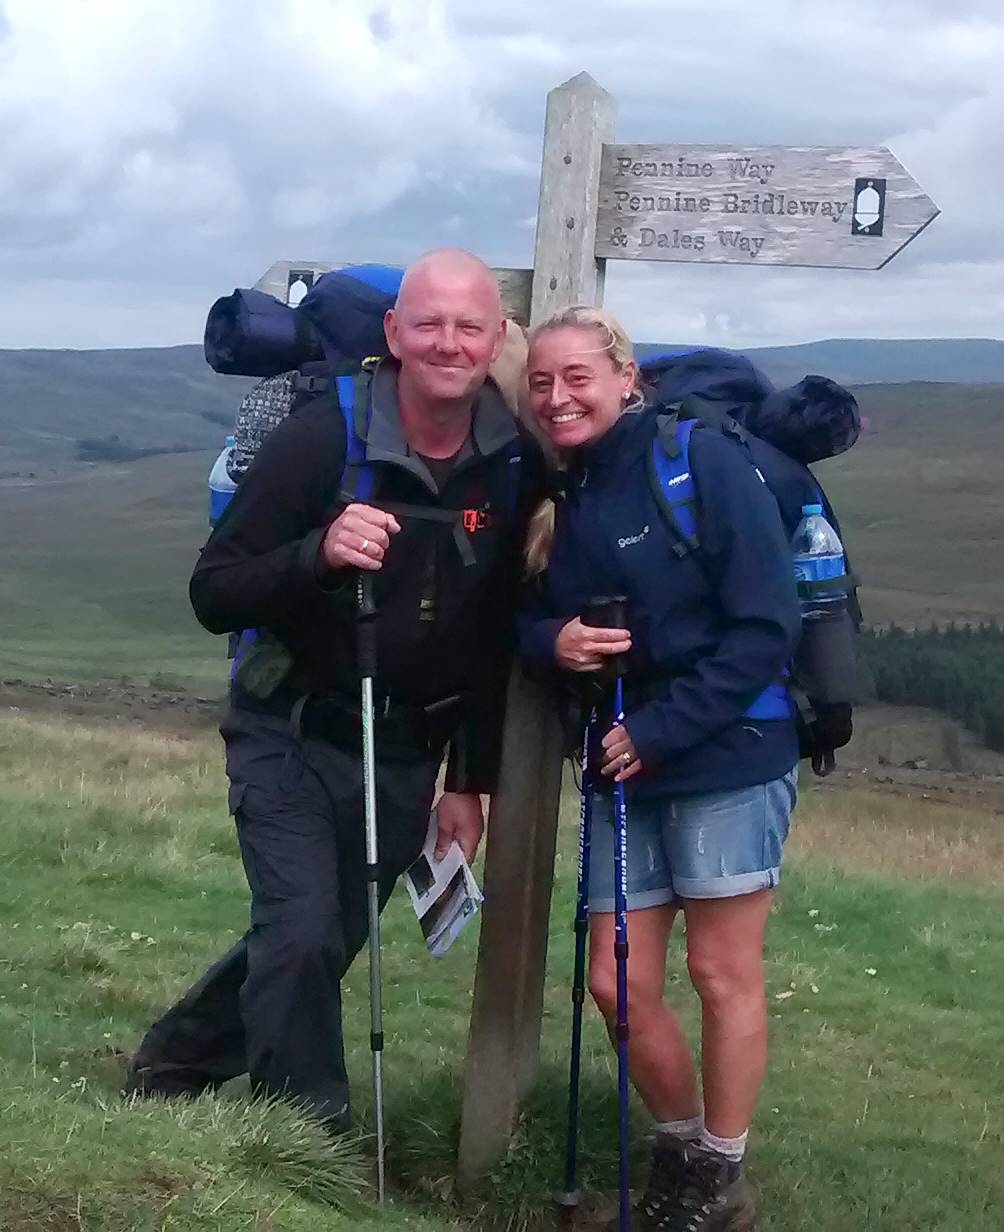 Aycliffe Couple Walk 80 Miles to Help Air Ambulance